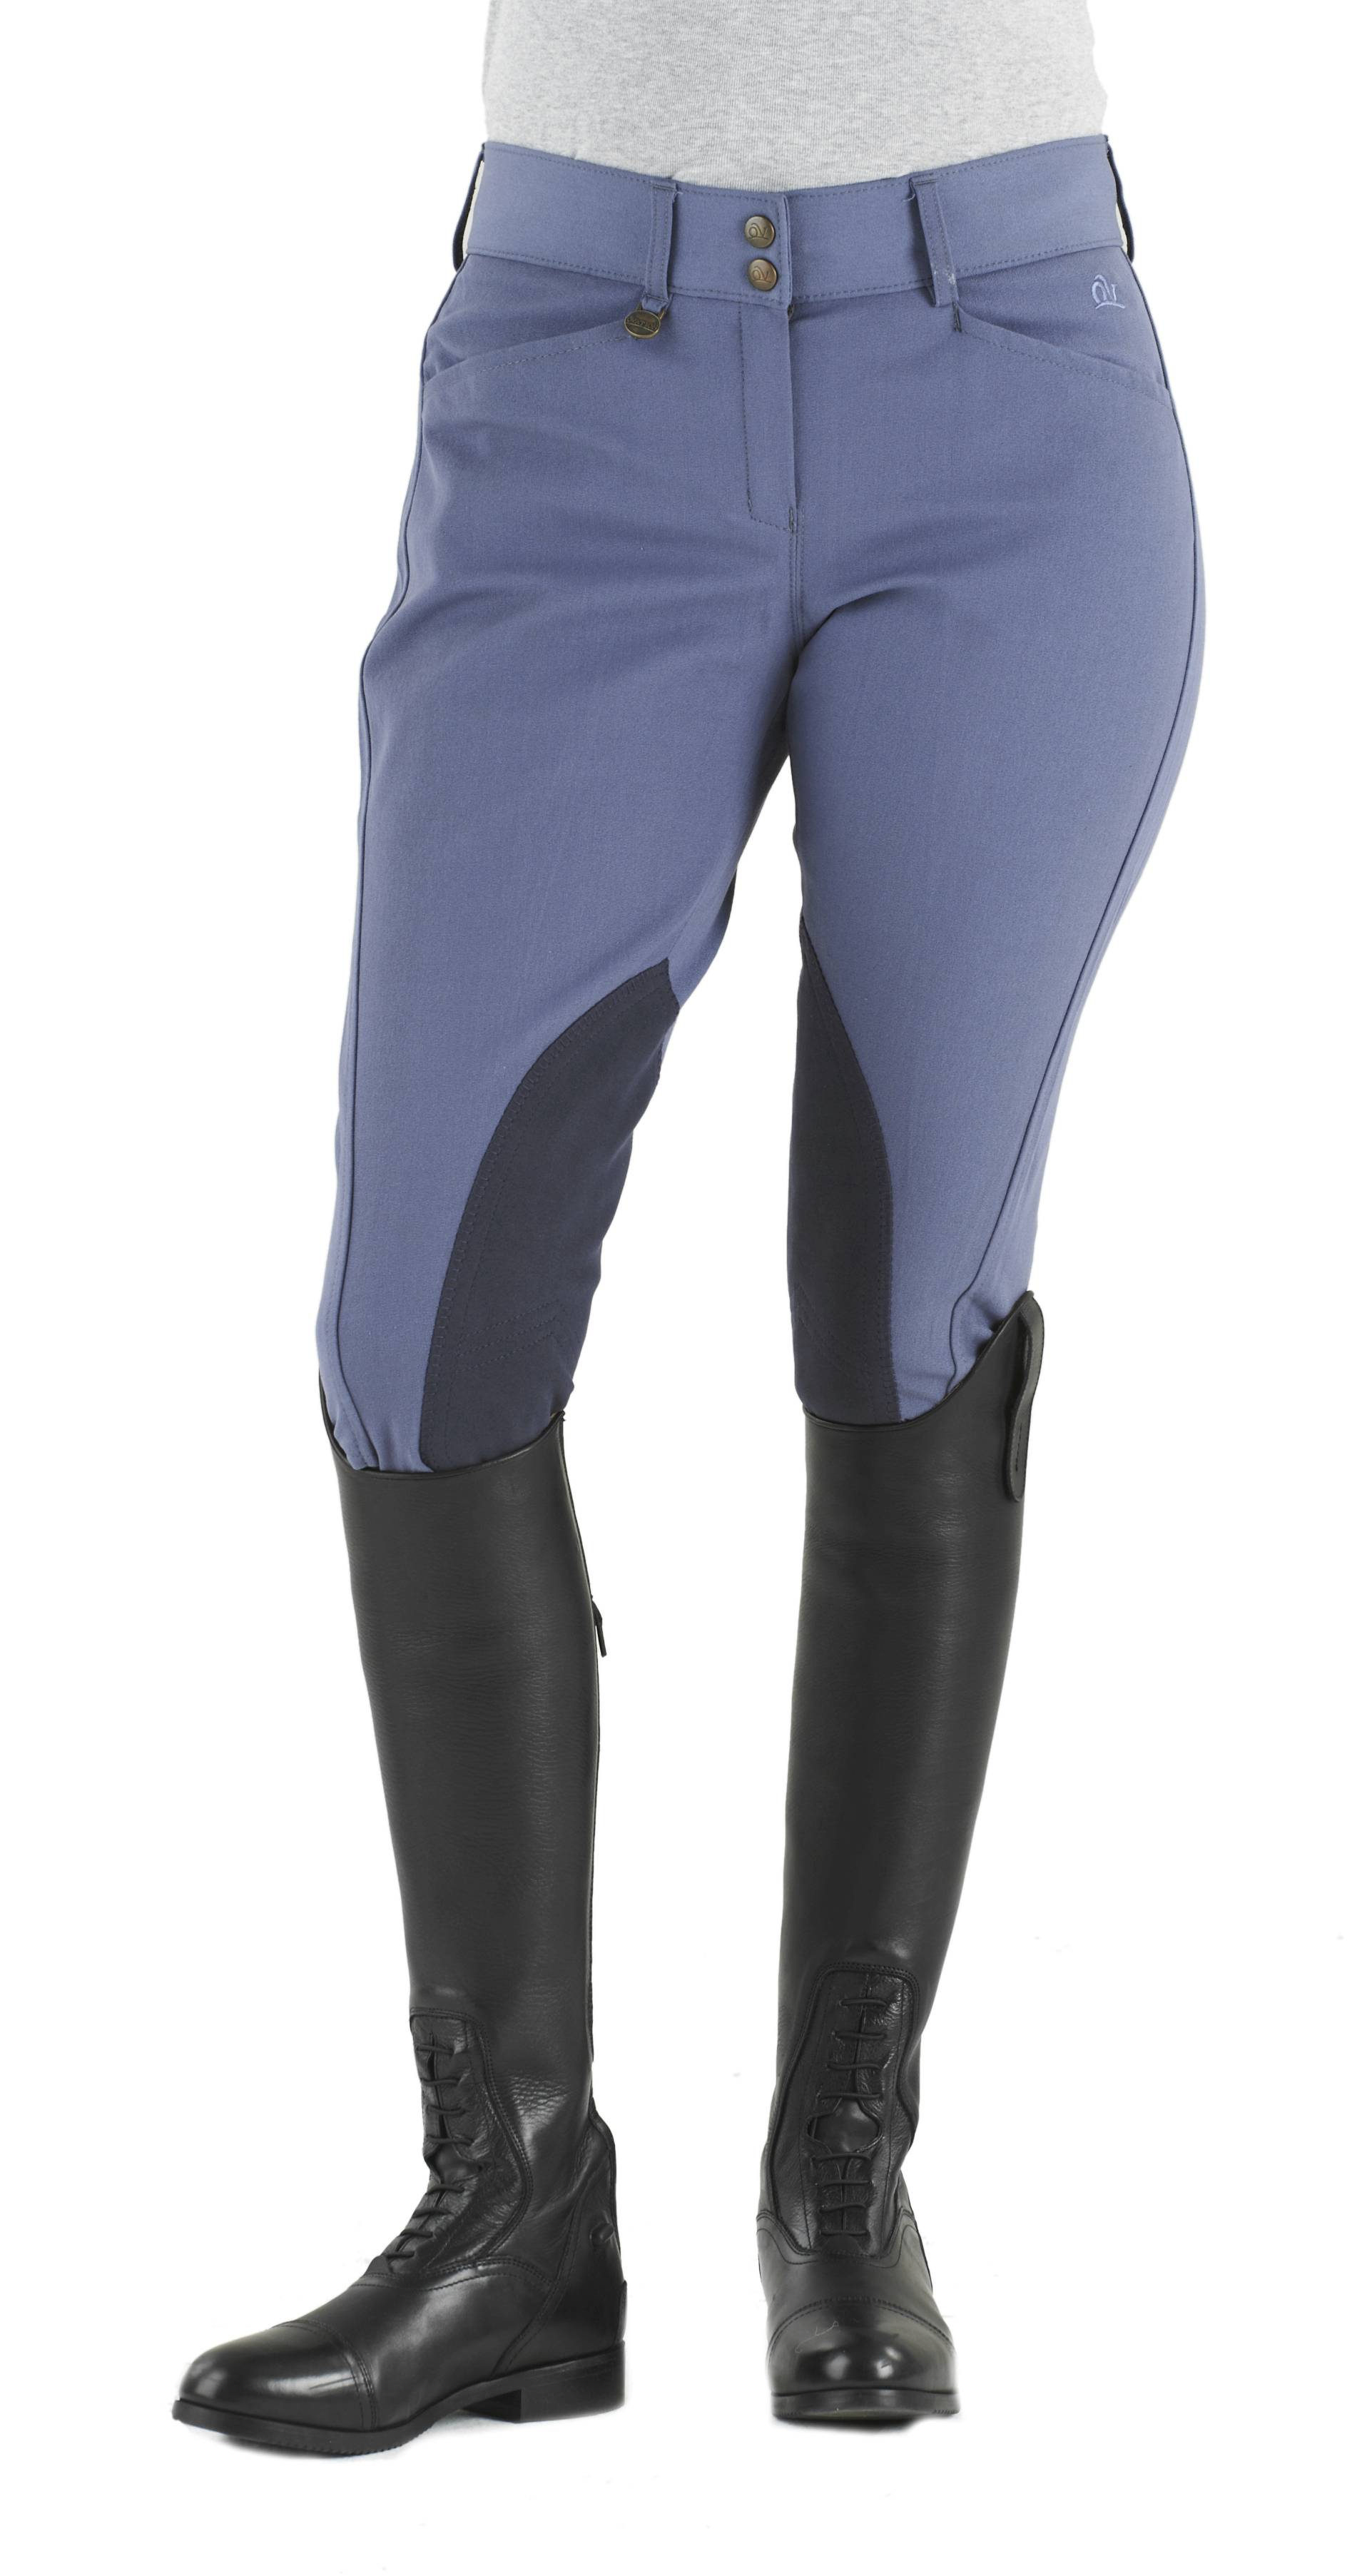 Ovation Euroweave DX Taylored Front Zip Breeches - Ladies, Knee Patch